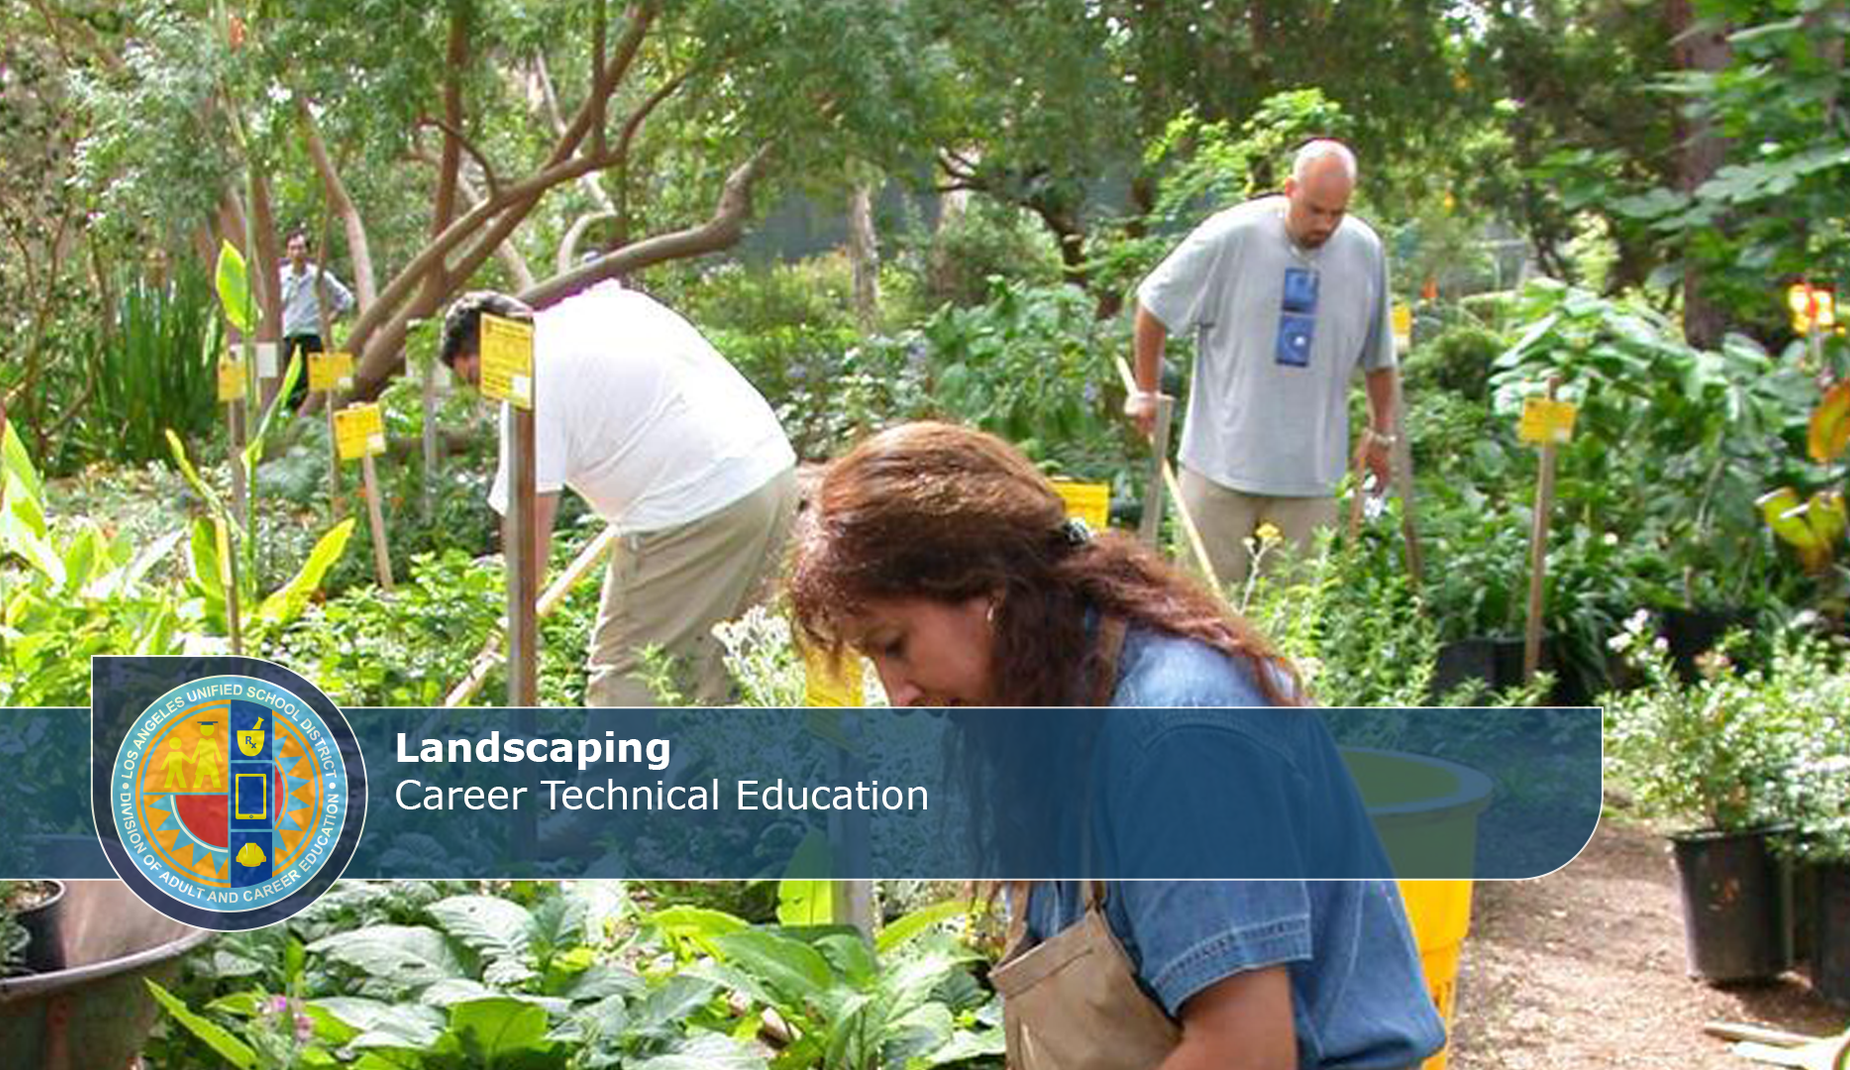 CTE Landscaping